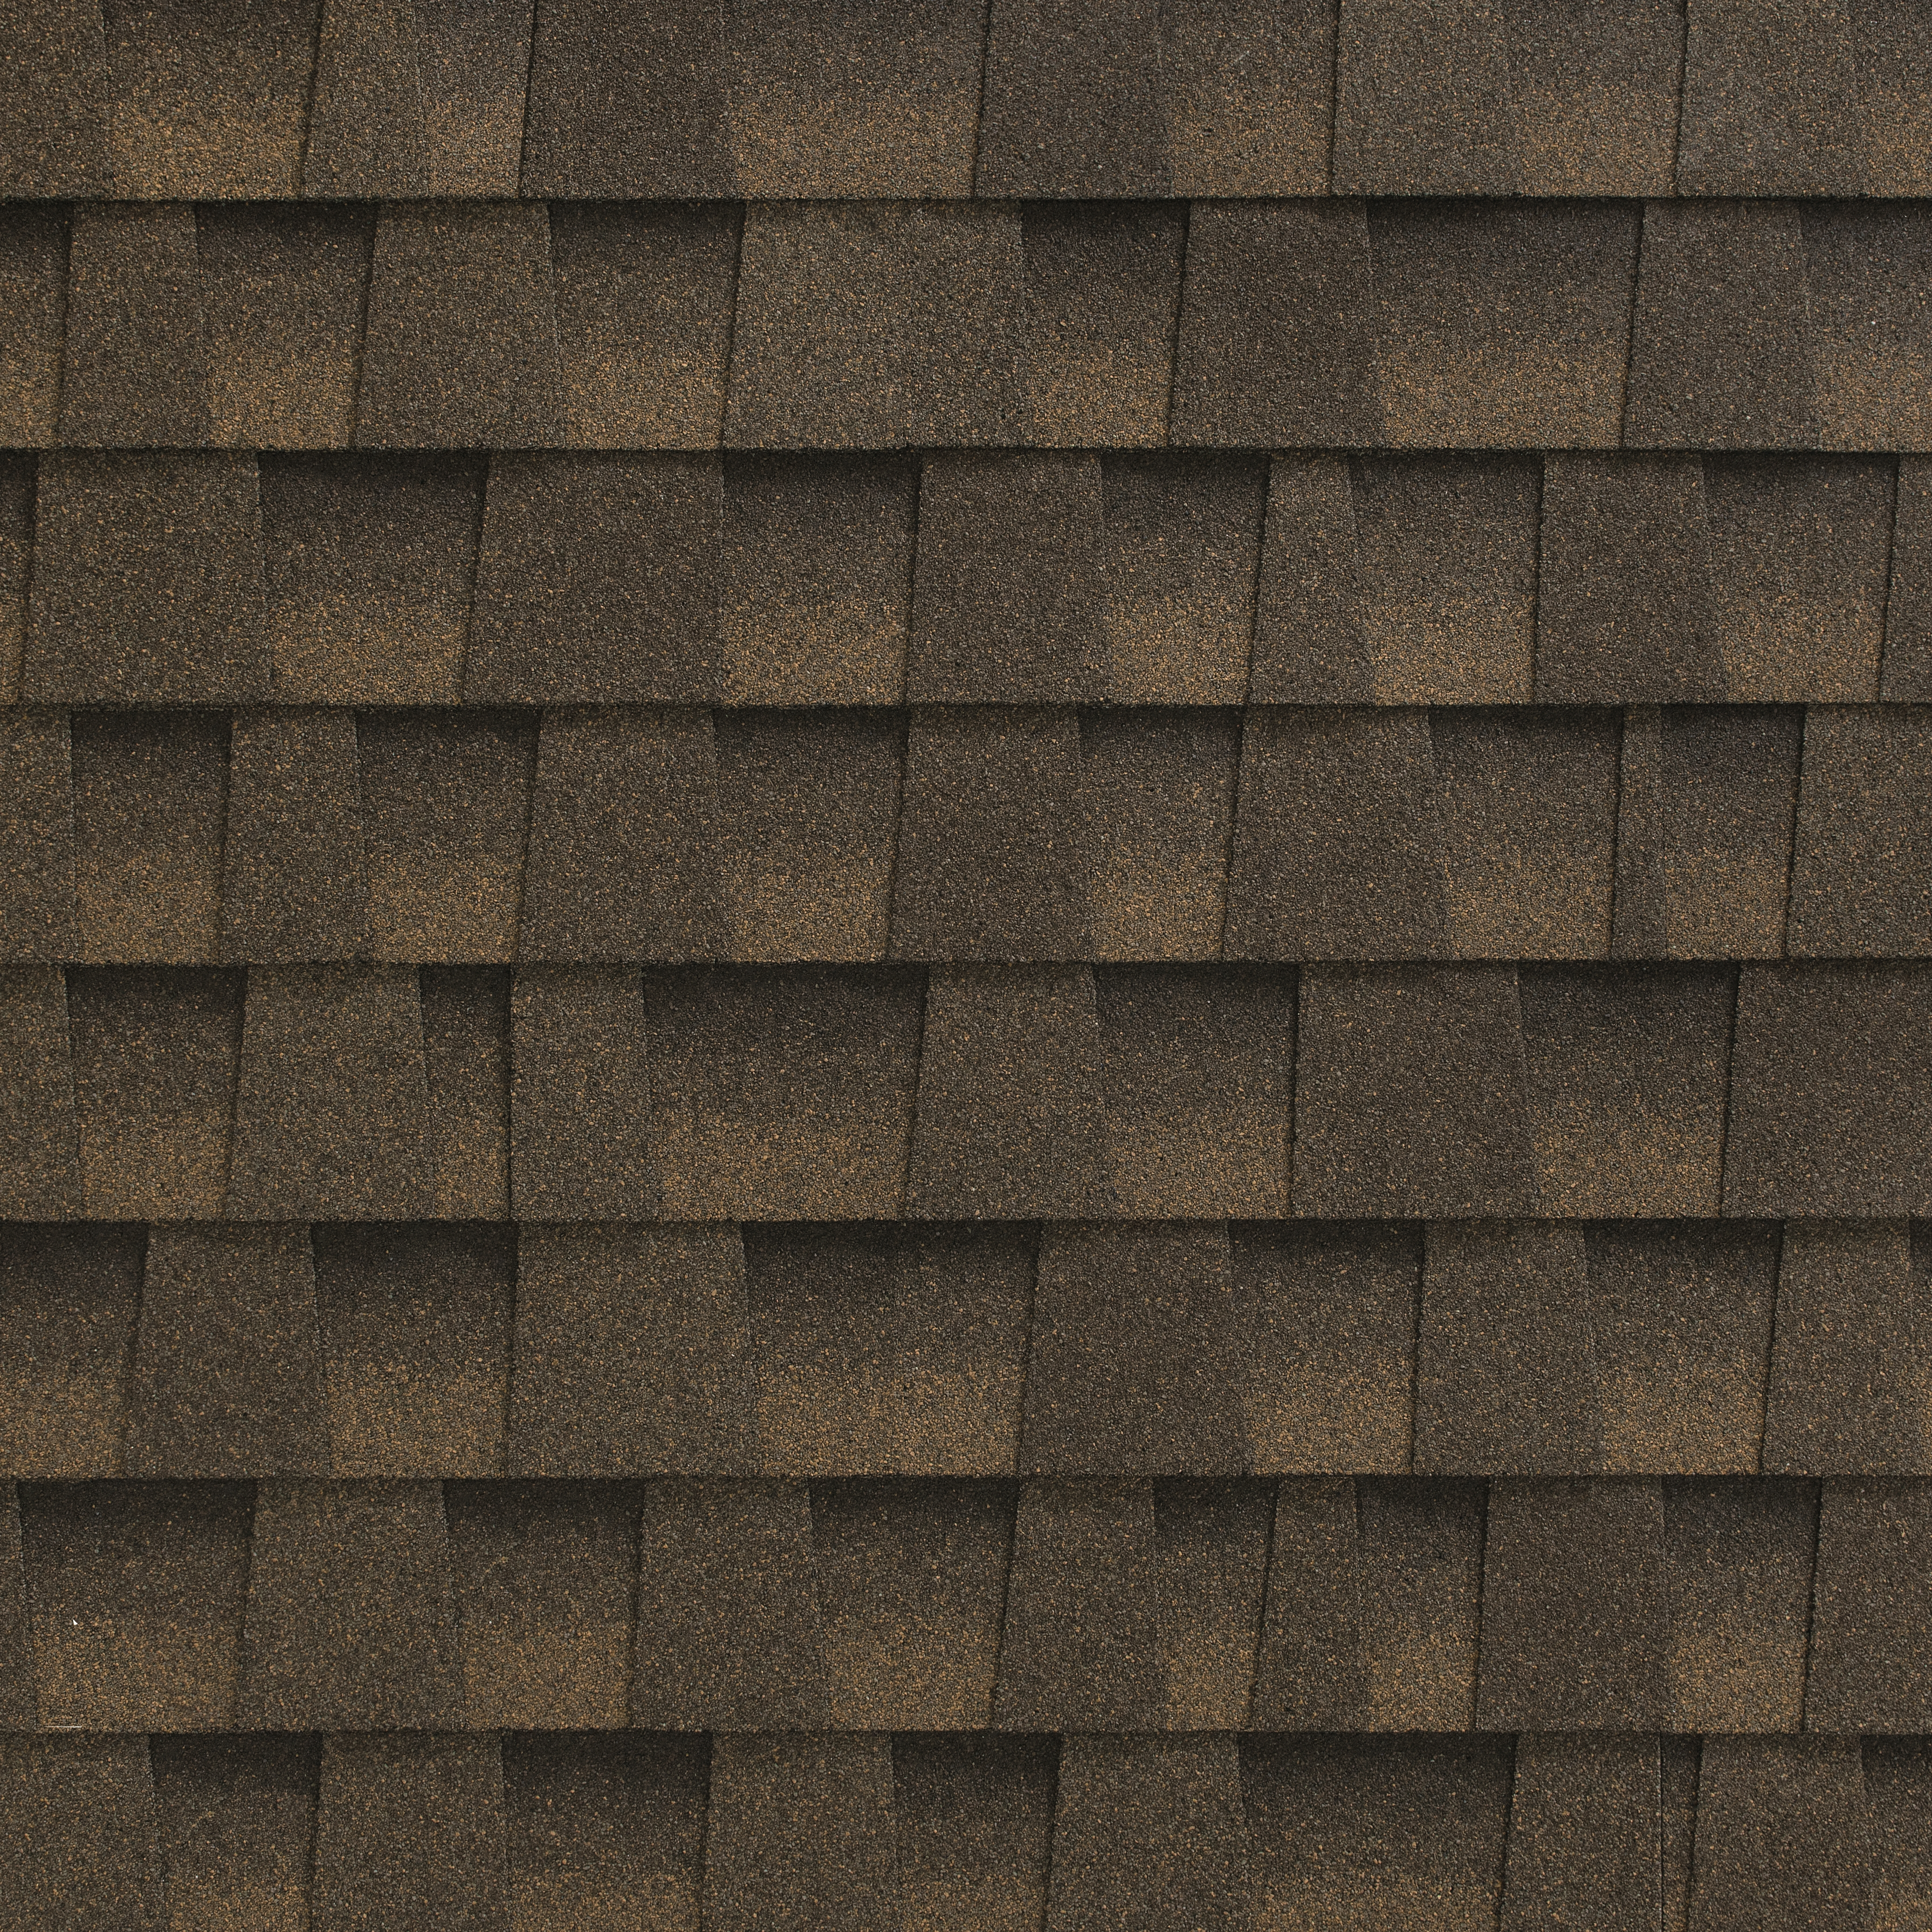 Beautiful Homes Start with Heritage Shingles: Western Red Cedar Shingles | Heritage Shingles | Cedar Shake Siding Cost